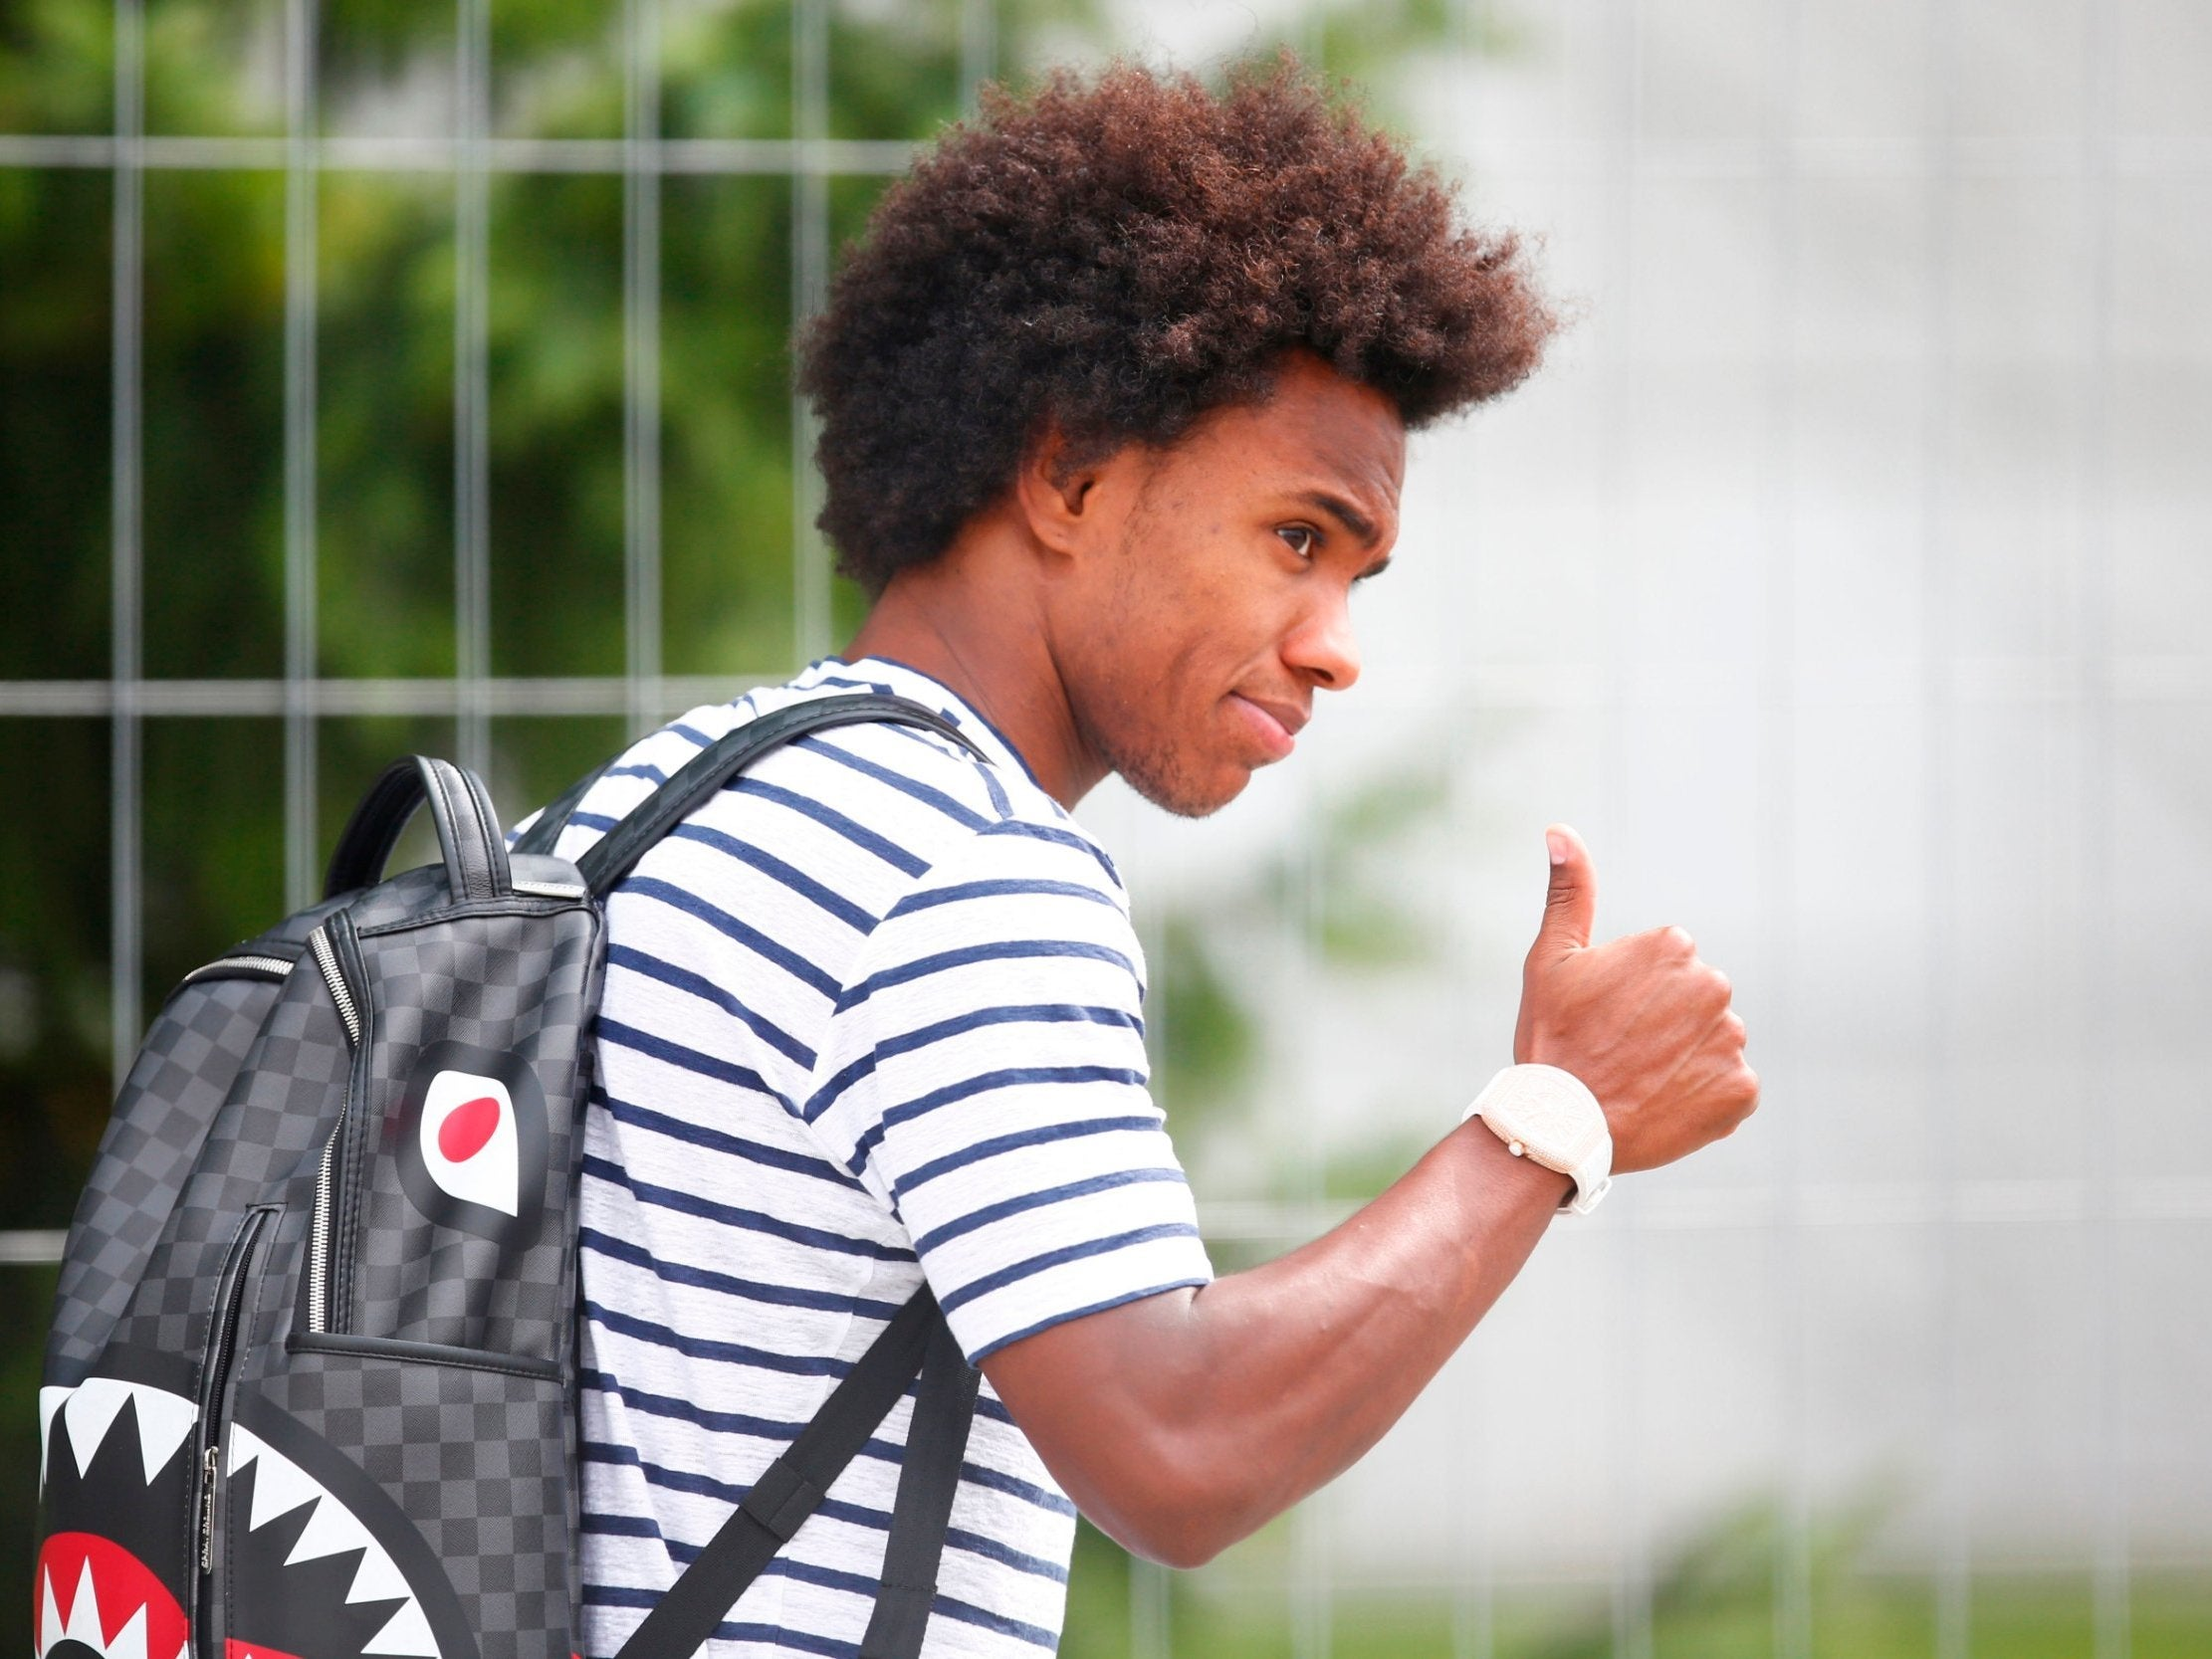 Transfer news, rumours - LIVE: Manchester United dealt blow in Willian chase, Real Madrid bid for Eden Hazard plus latest Arsenal, Spurs and more